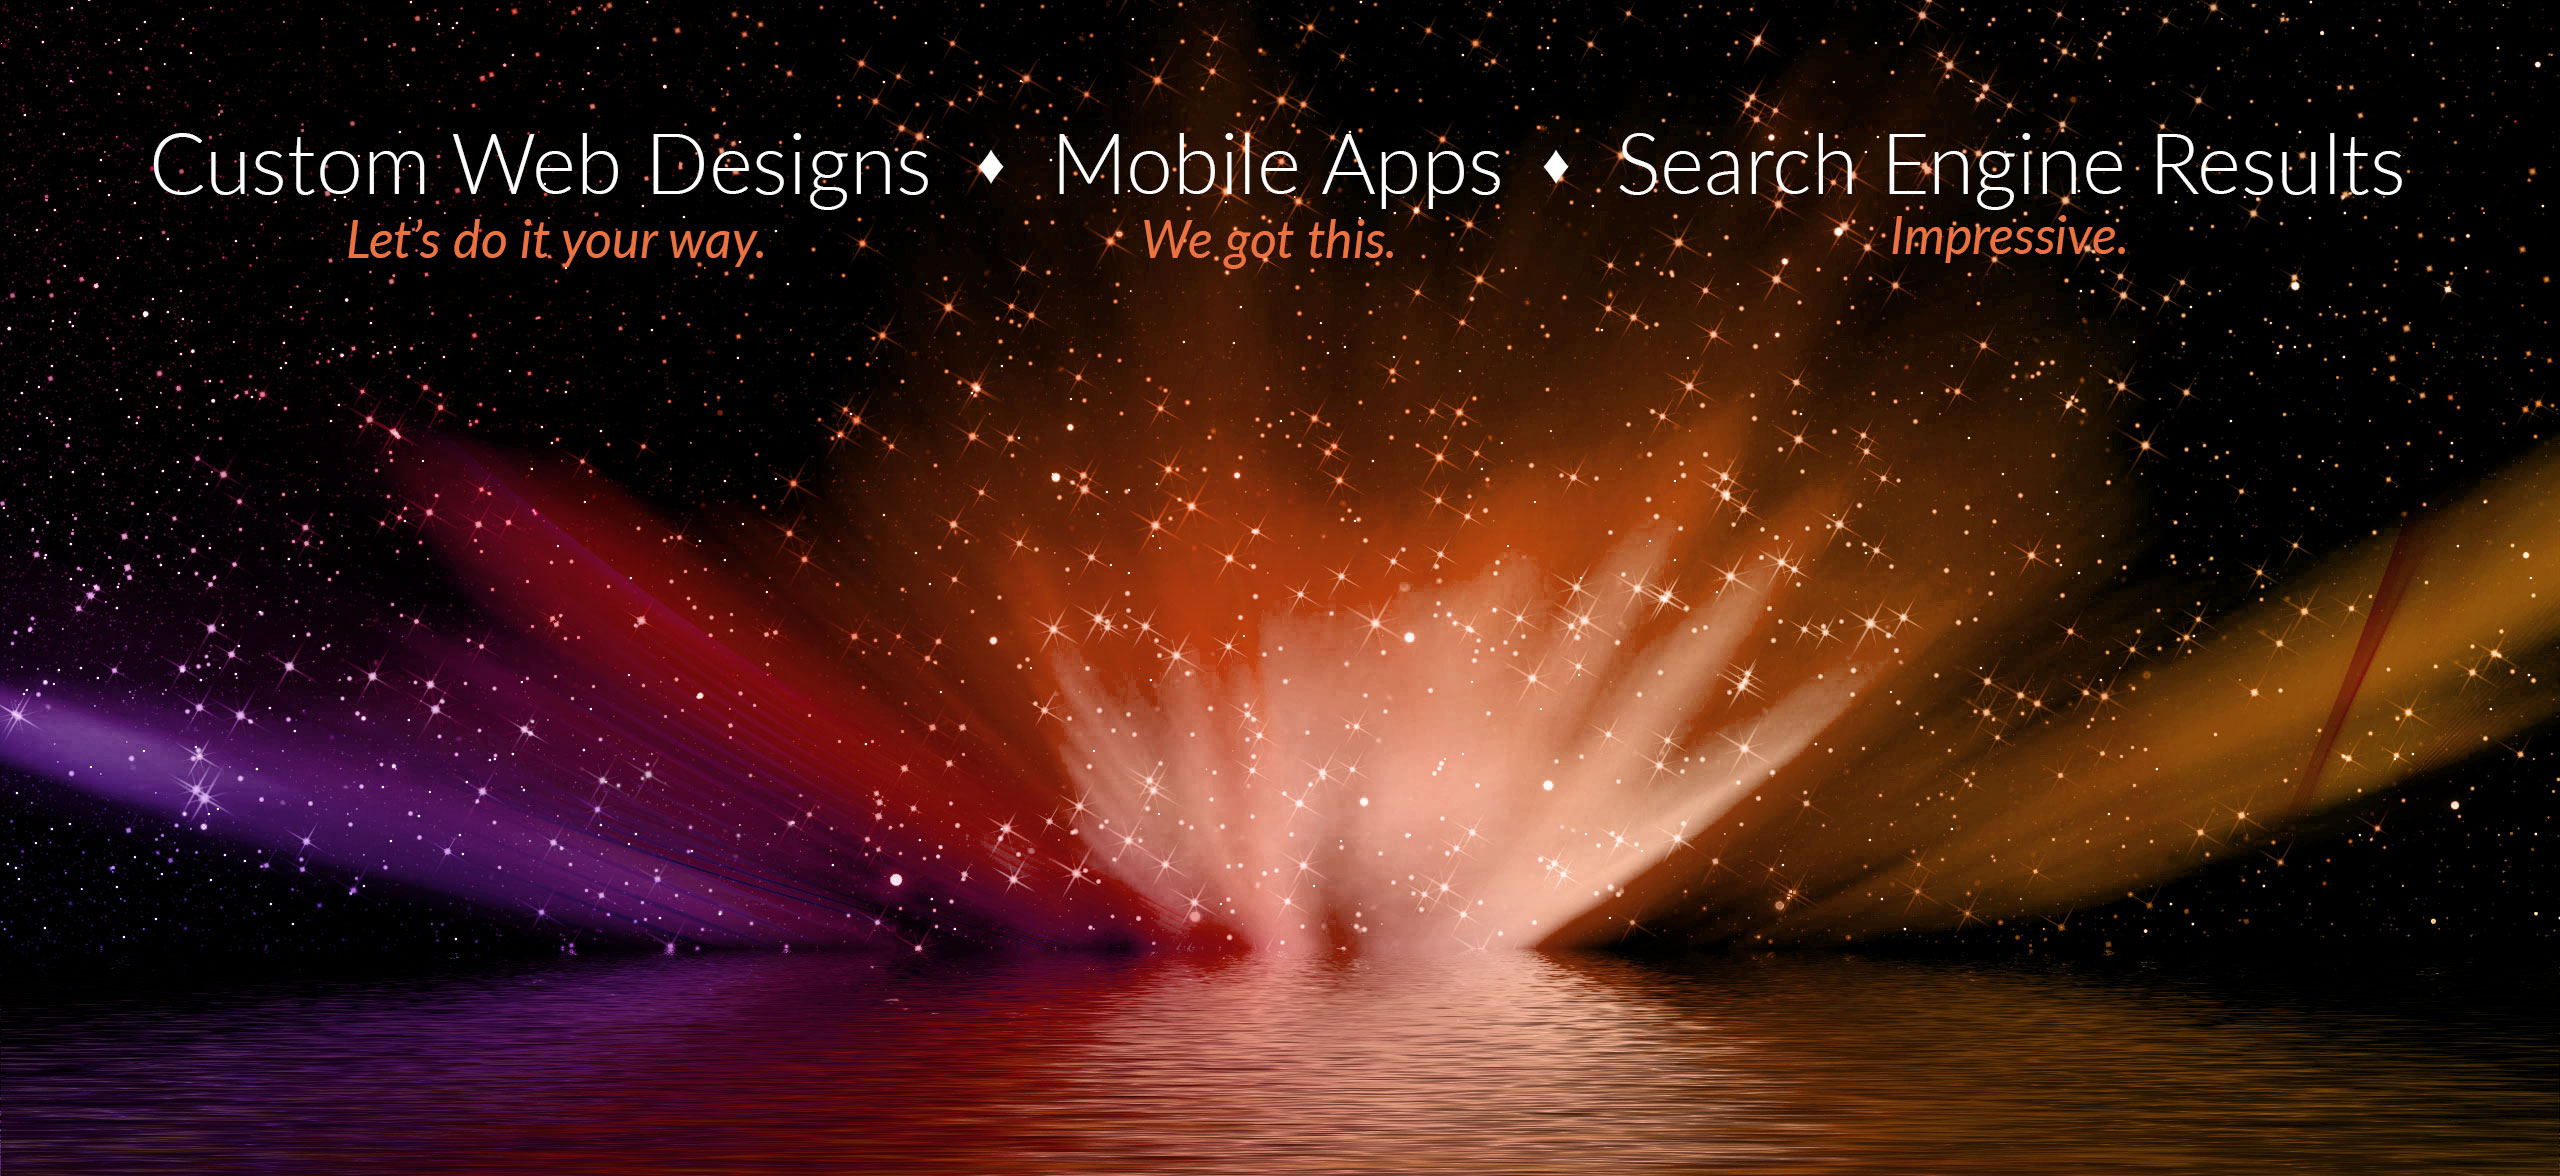 Custom Web Designs, Mobile Apps, SEO Results